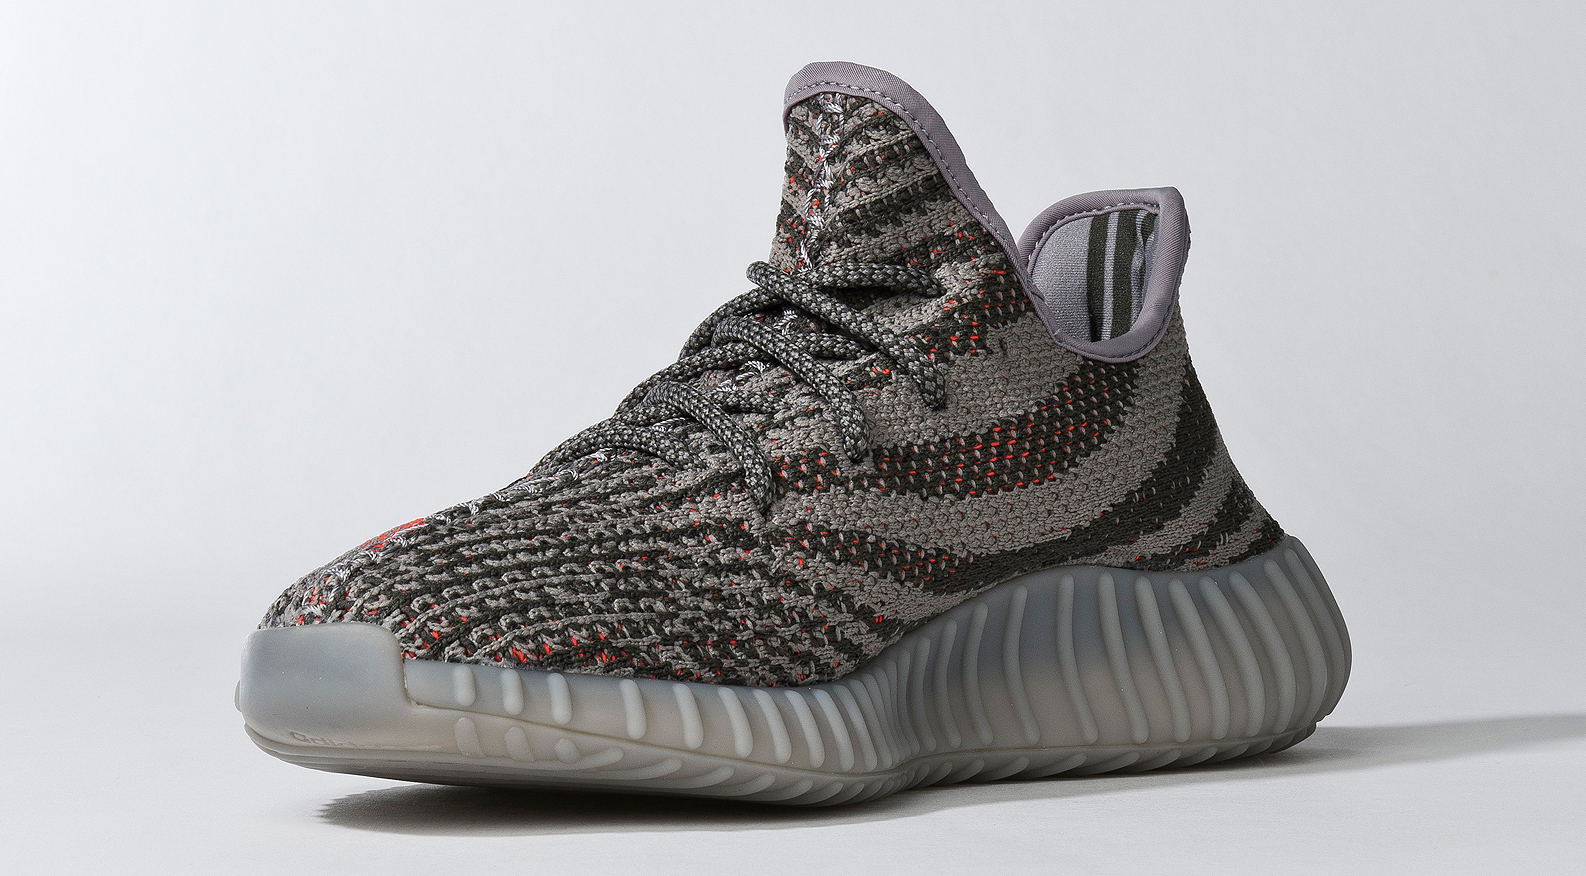 Fake YEEZYs: Here's How to Spot a Fake Yeezy Boost